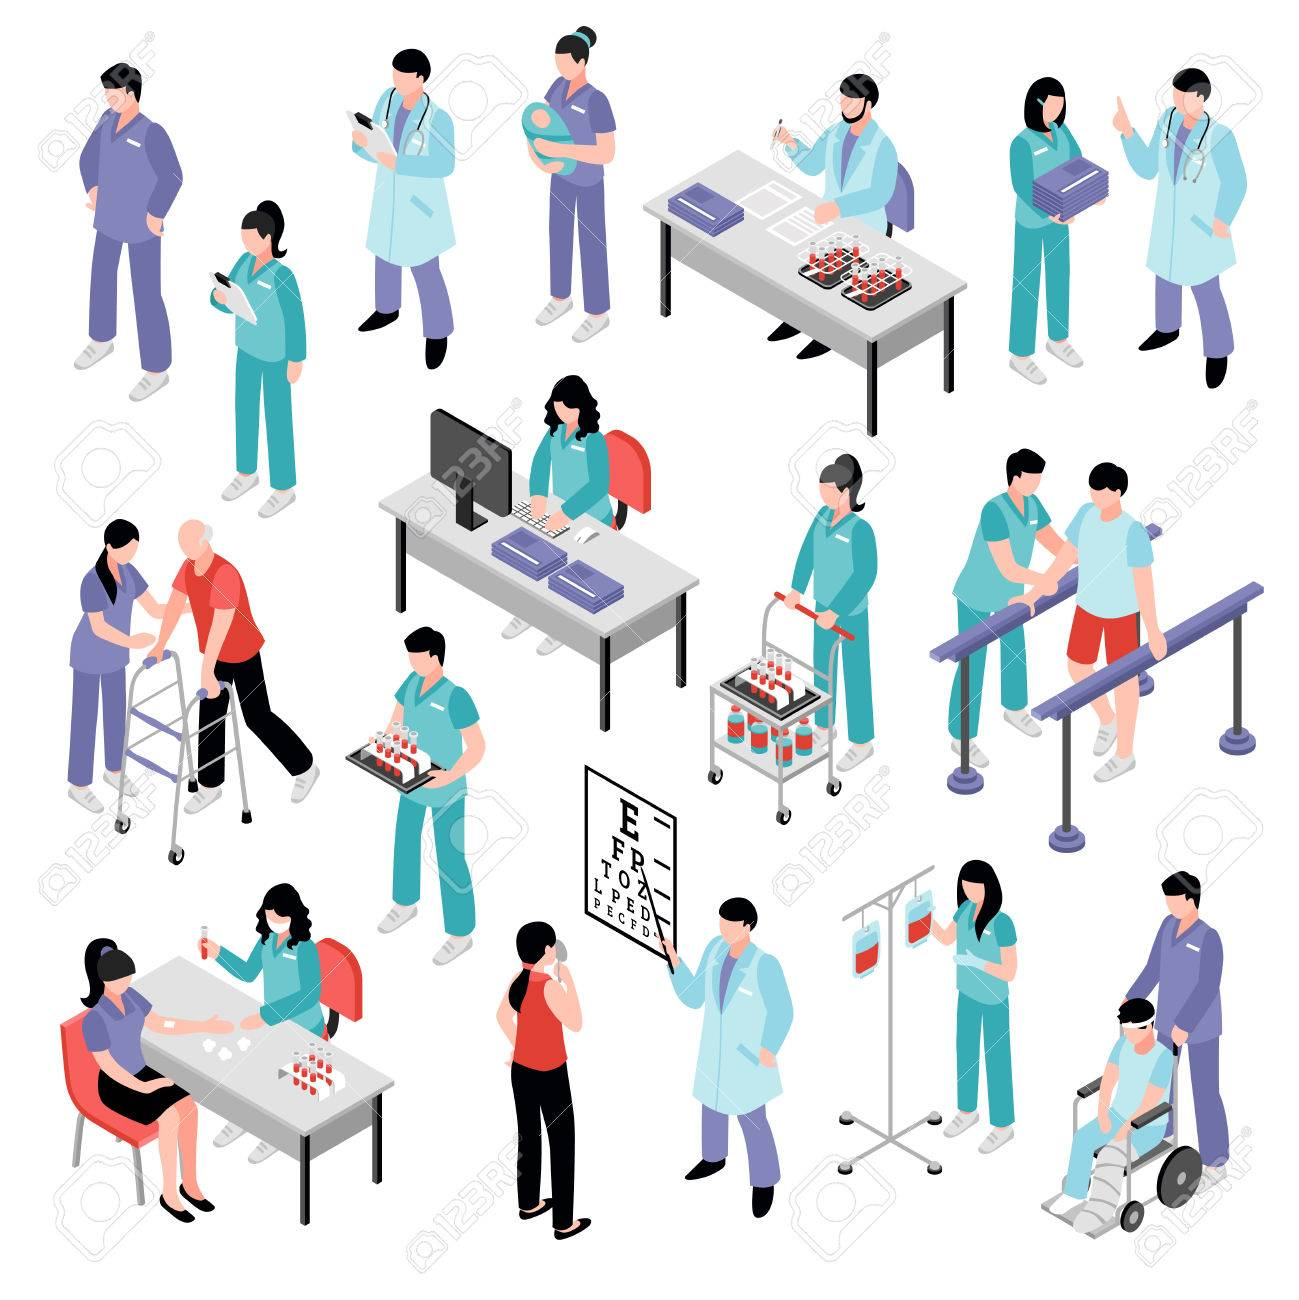 Docters physicians nurses physiotherapist and laboratory assistent attending patients in hospital isometric icons collection isolated vector illustration - 83426565